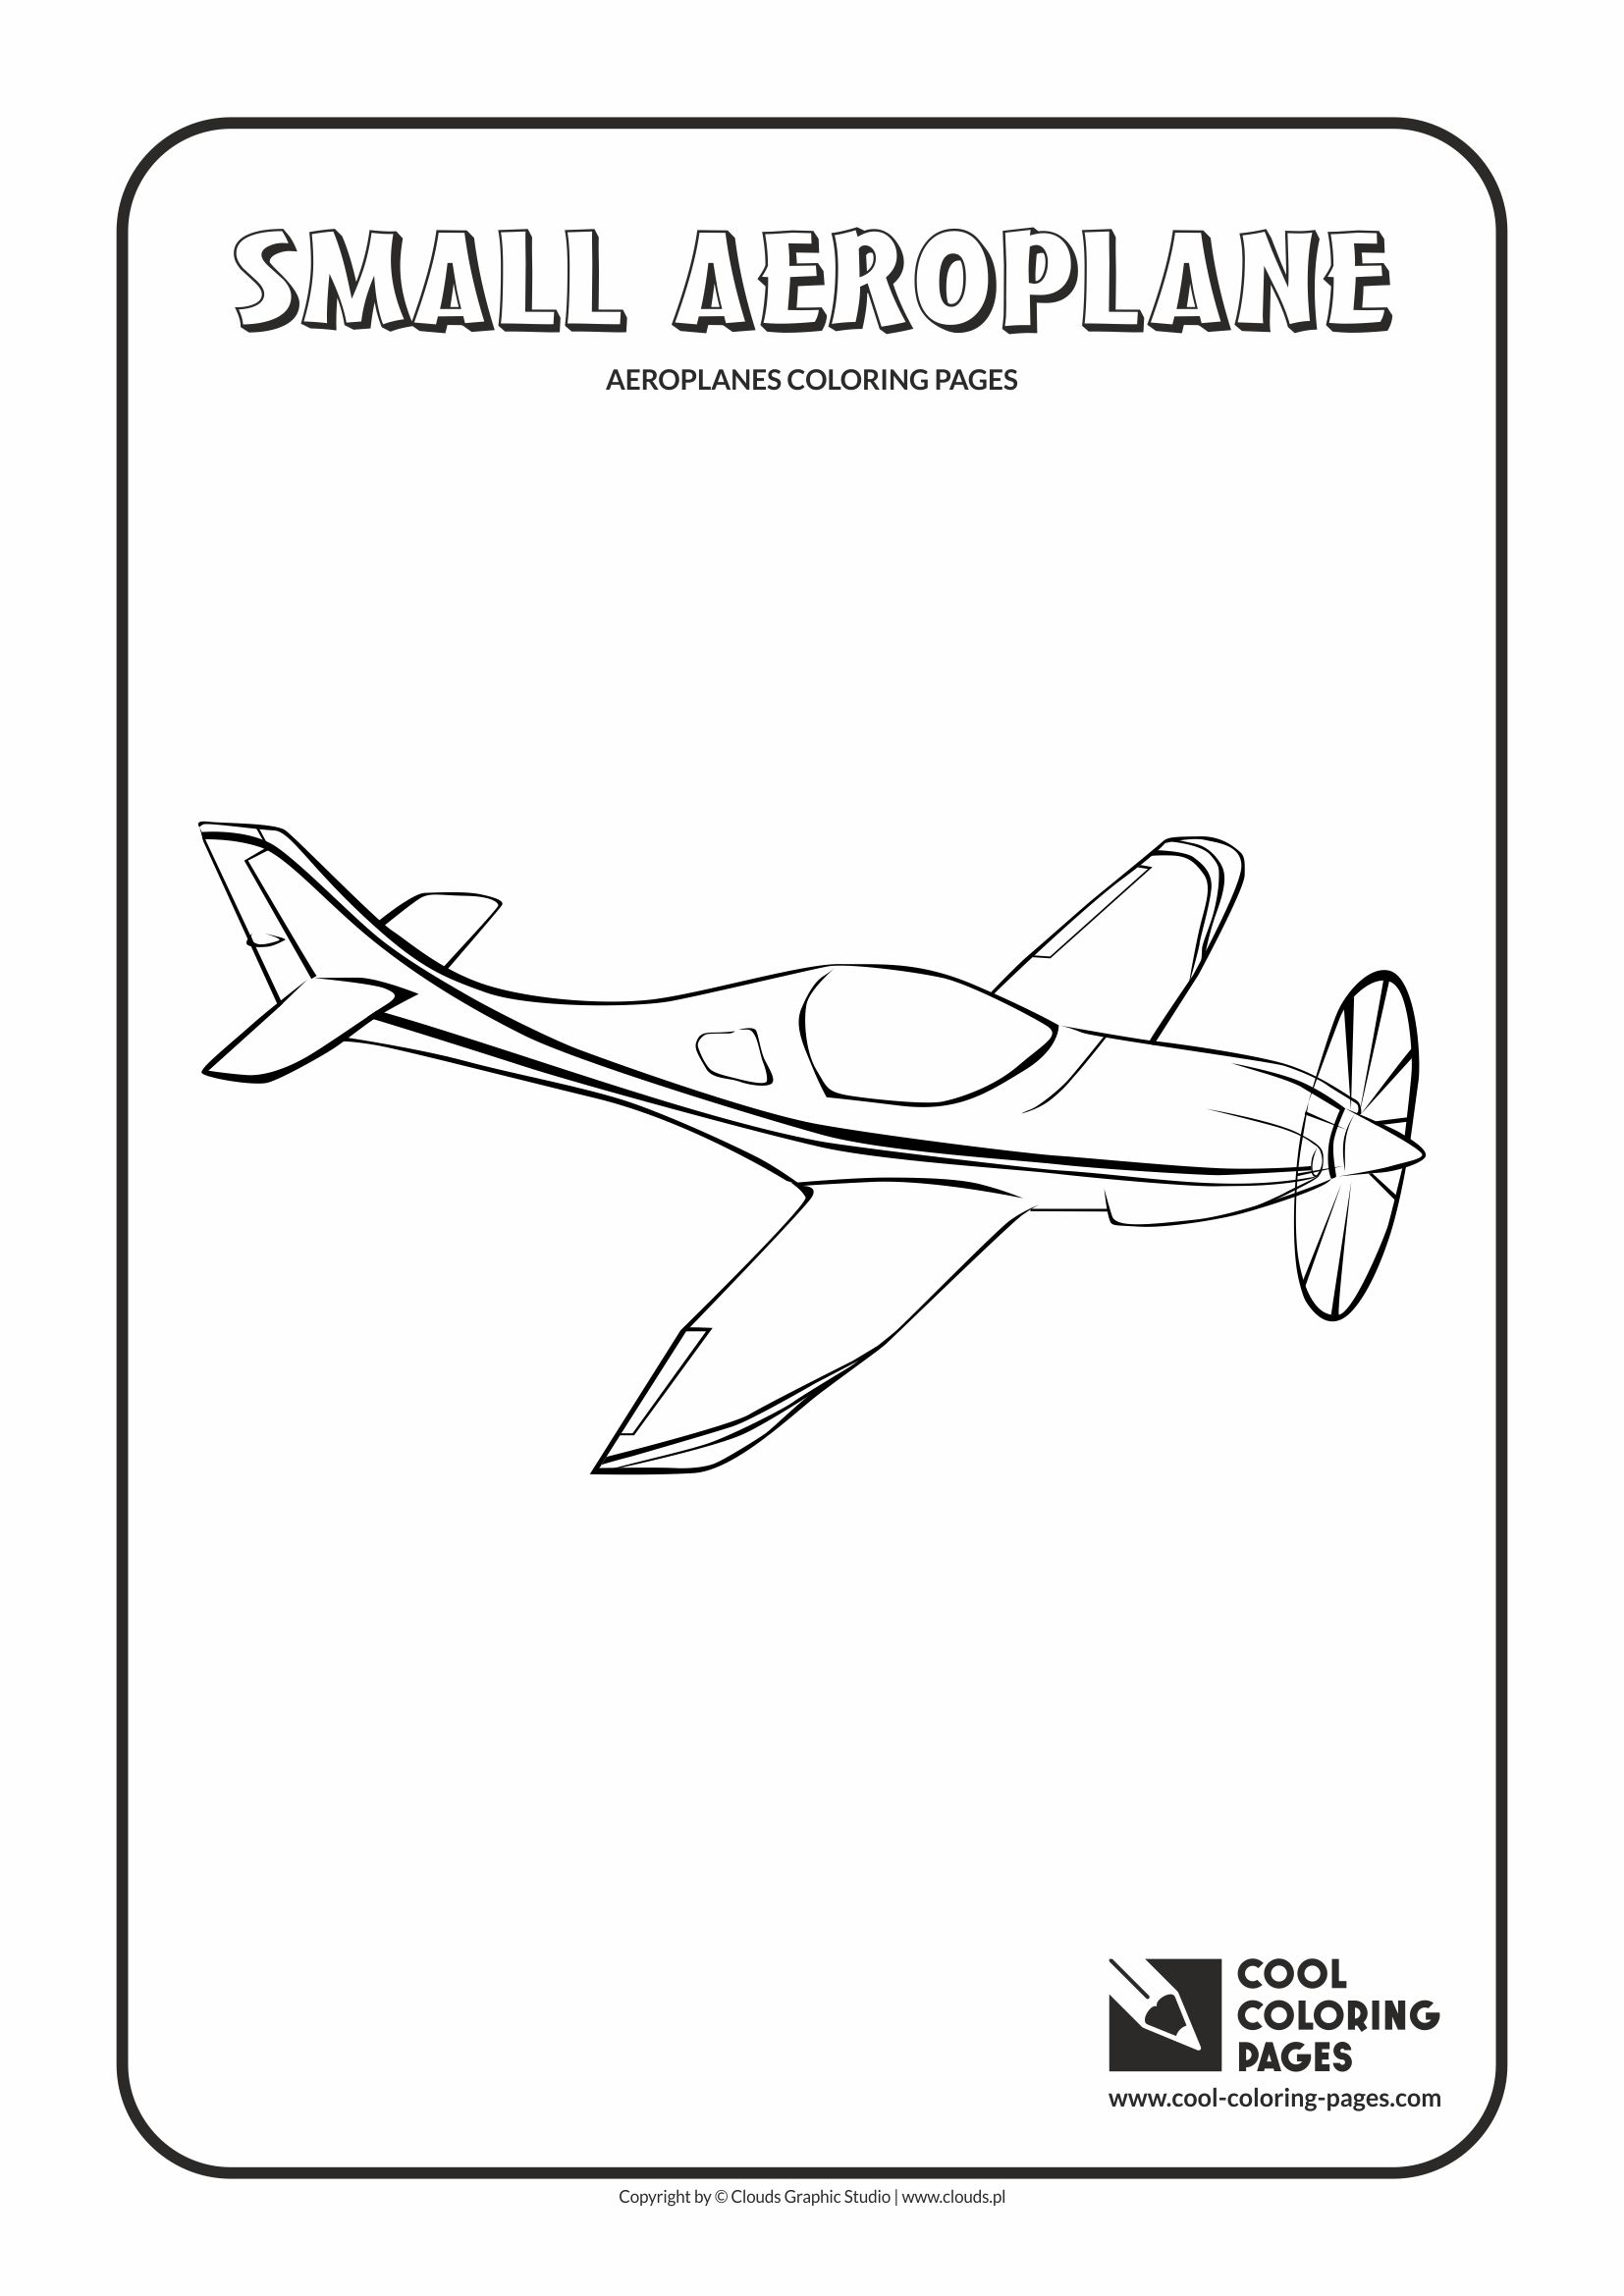 Cool Coloring Pages Aeroplanes Coloring Pages Cool